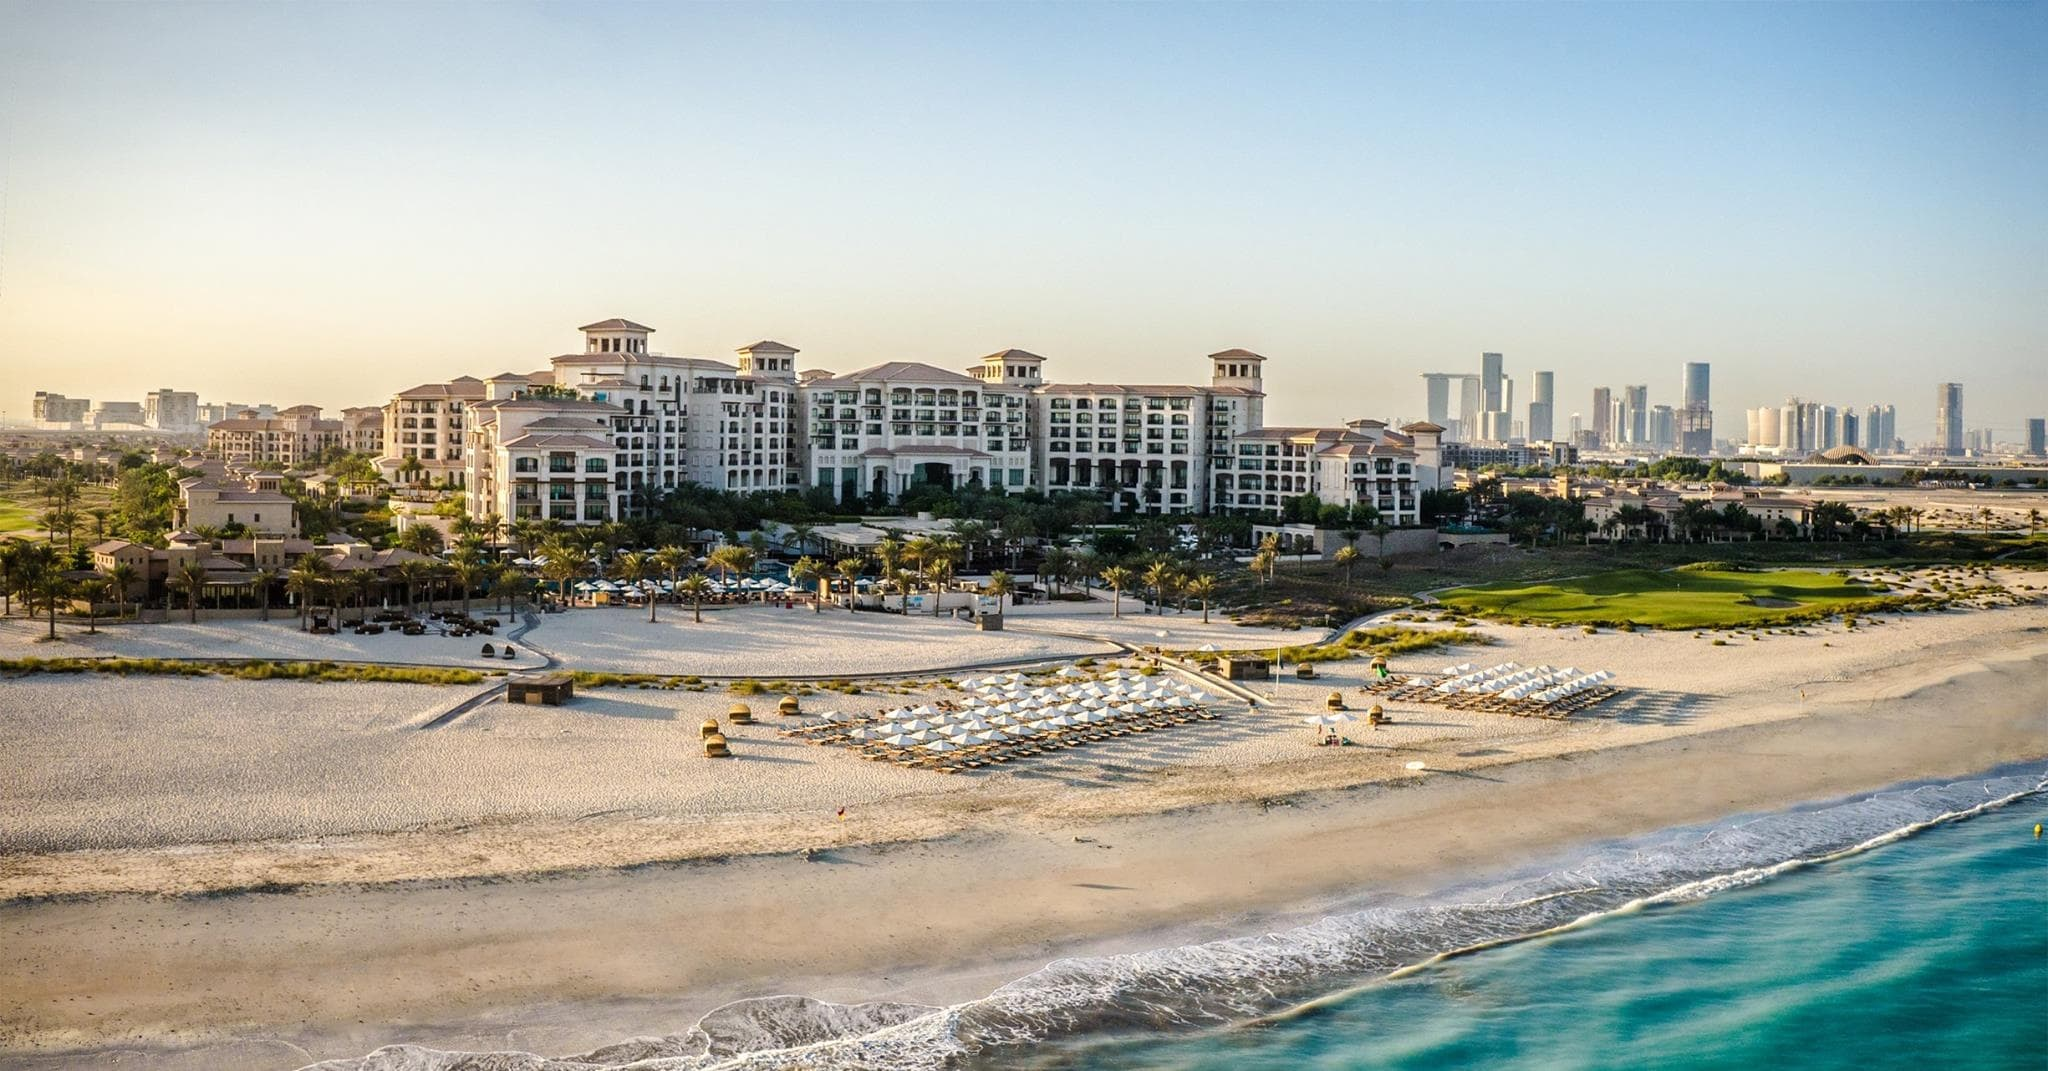 St Regis Yas Island hotels in UAE